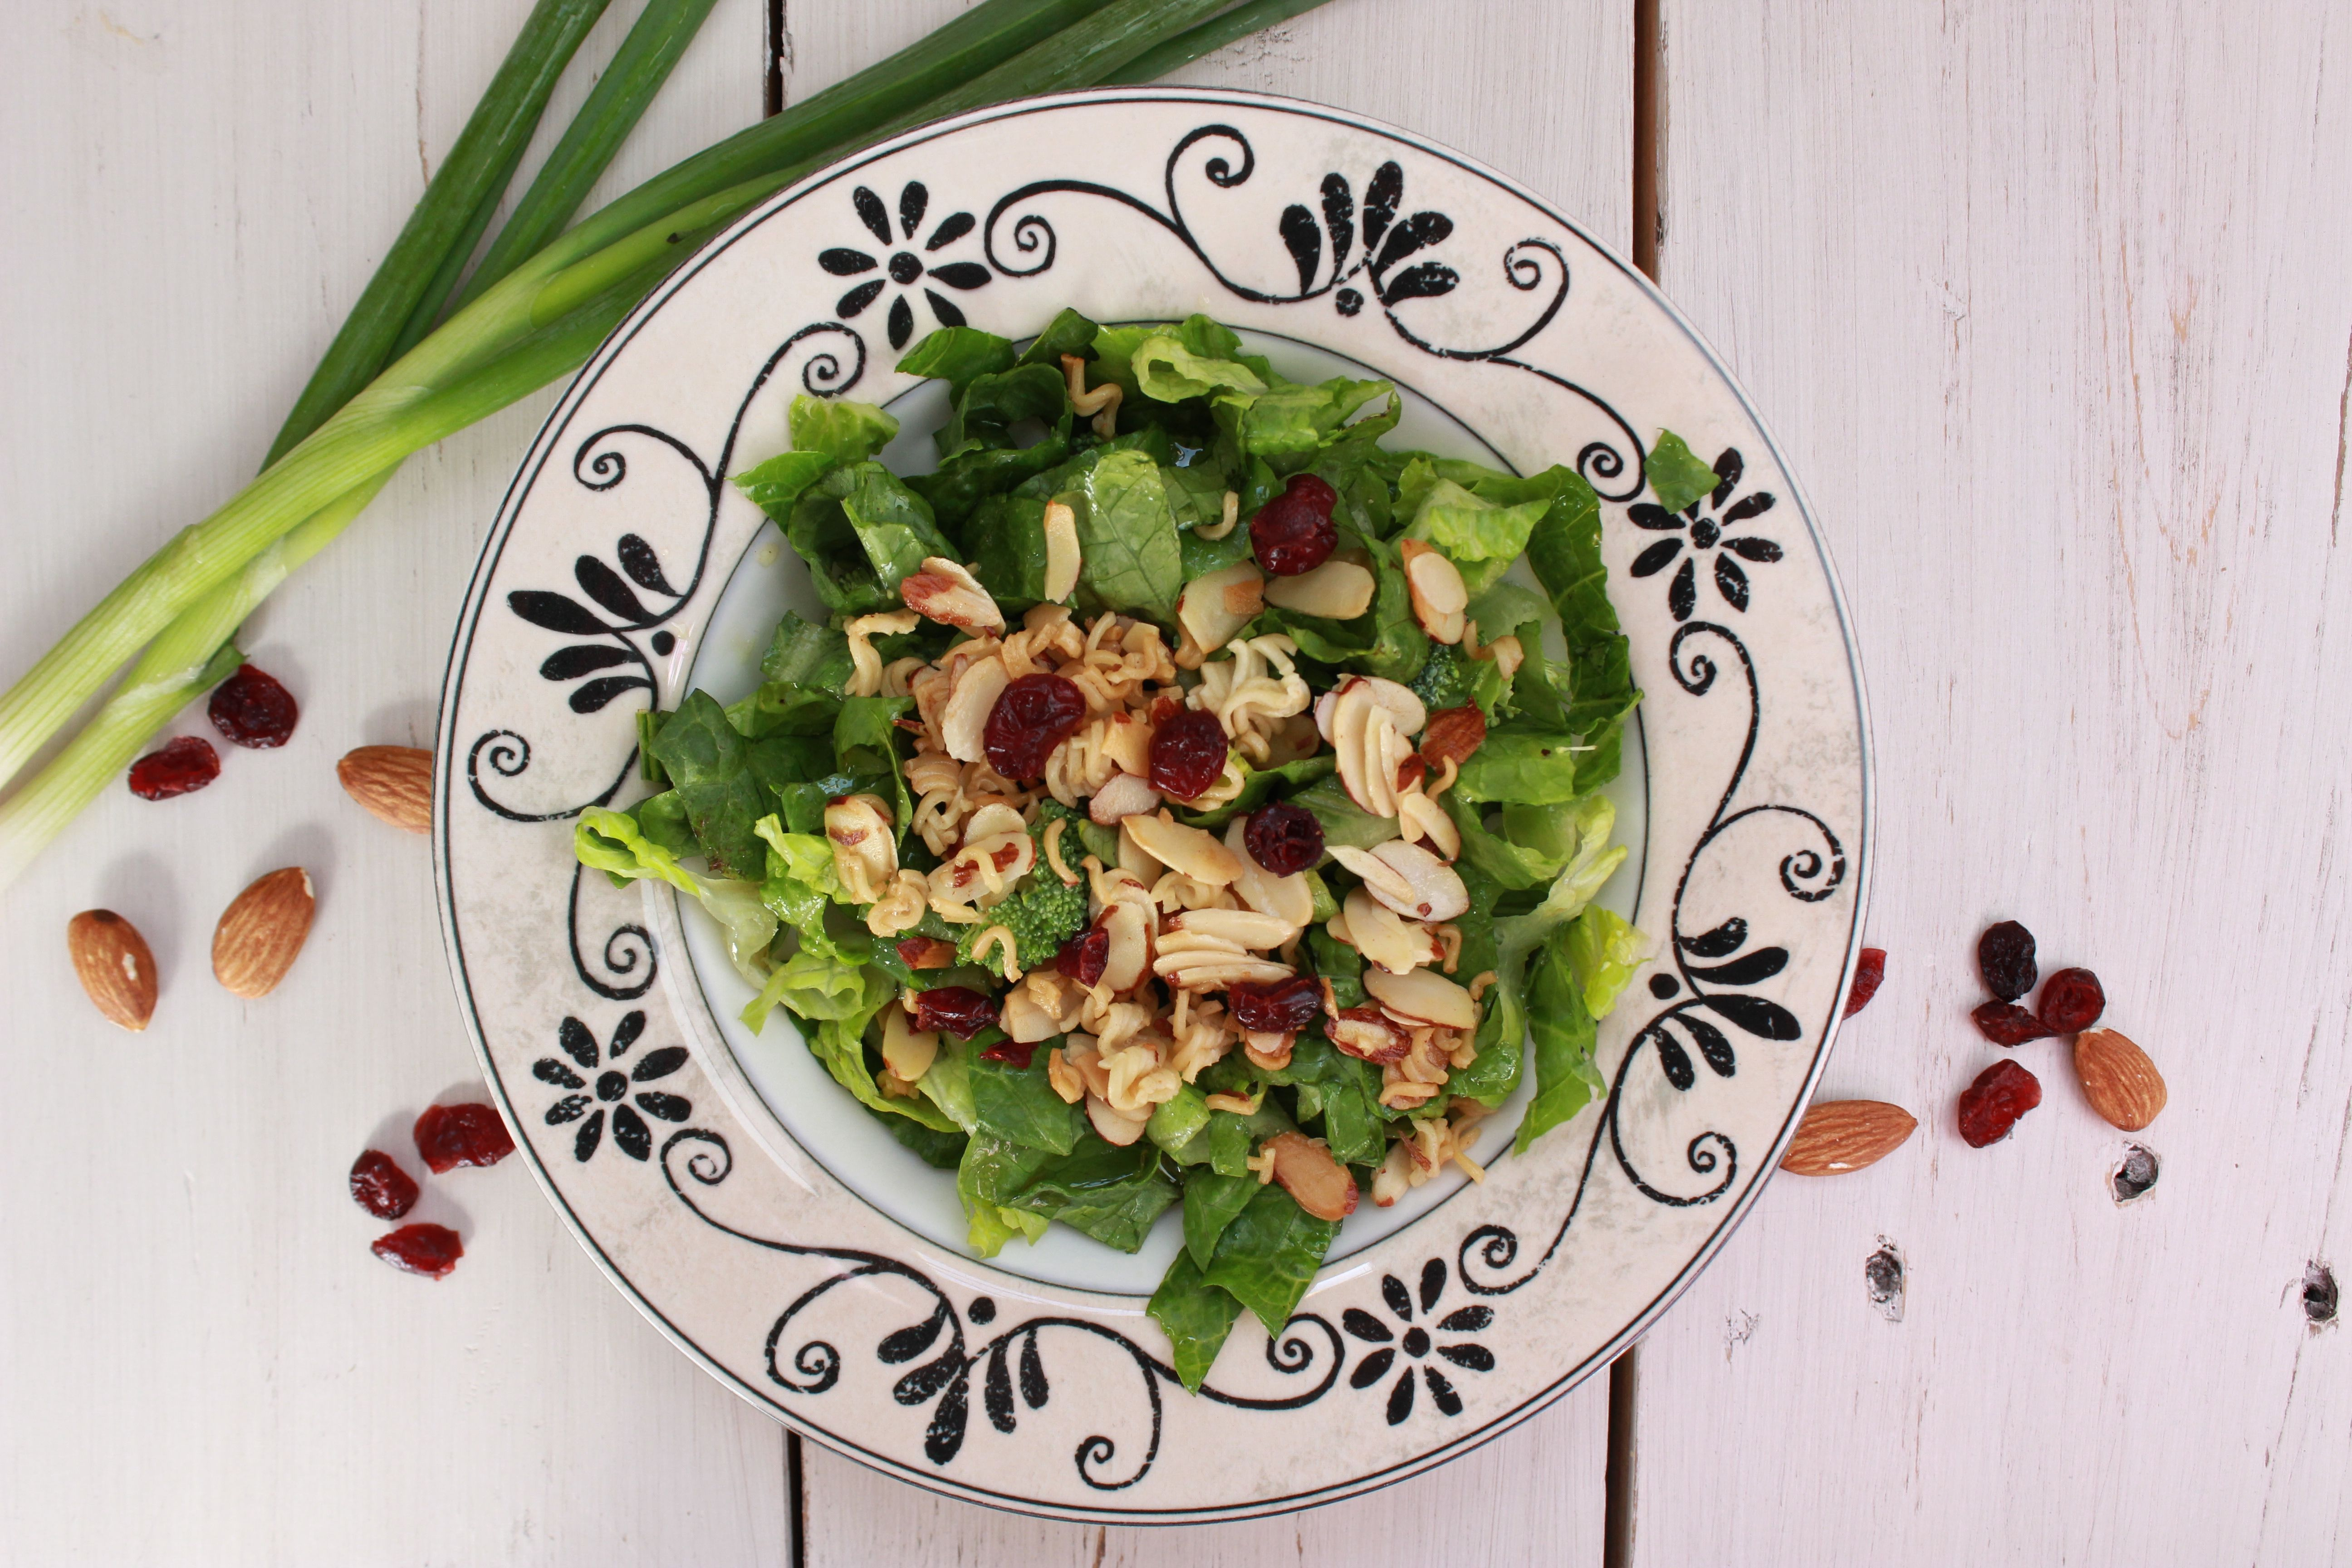 Here's a really great lettuce salad for your weekend ...